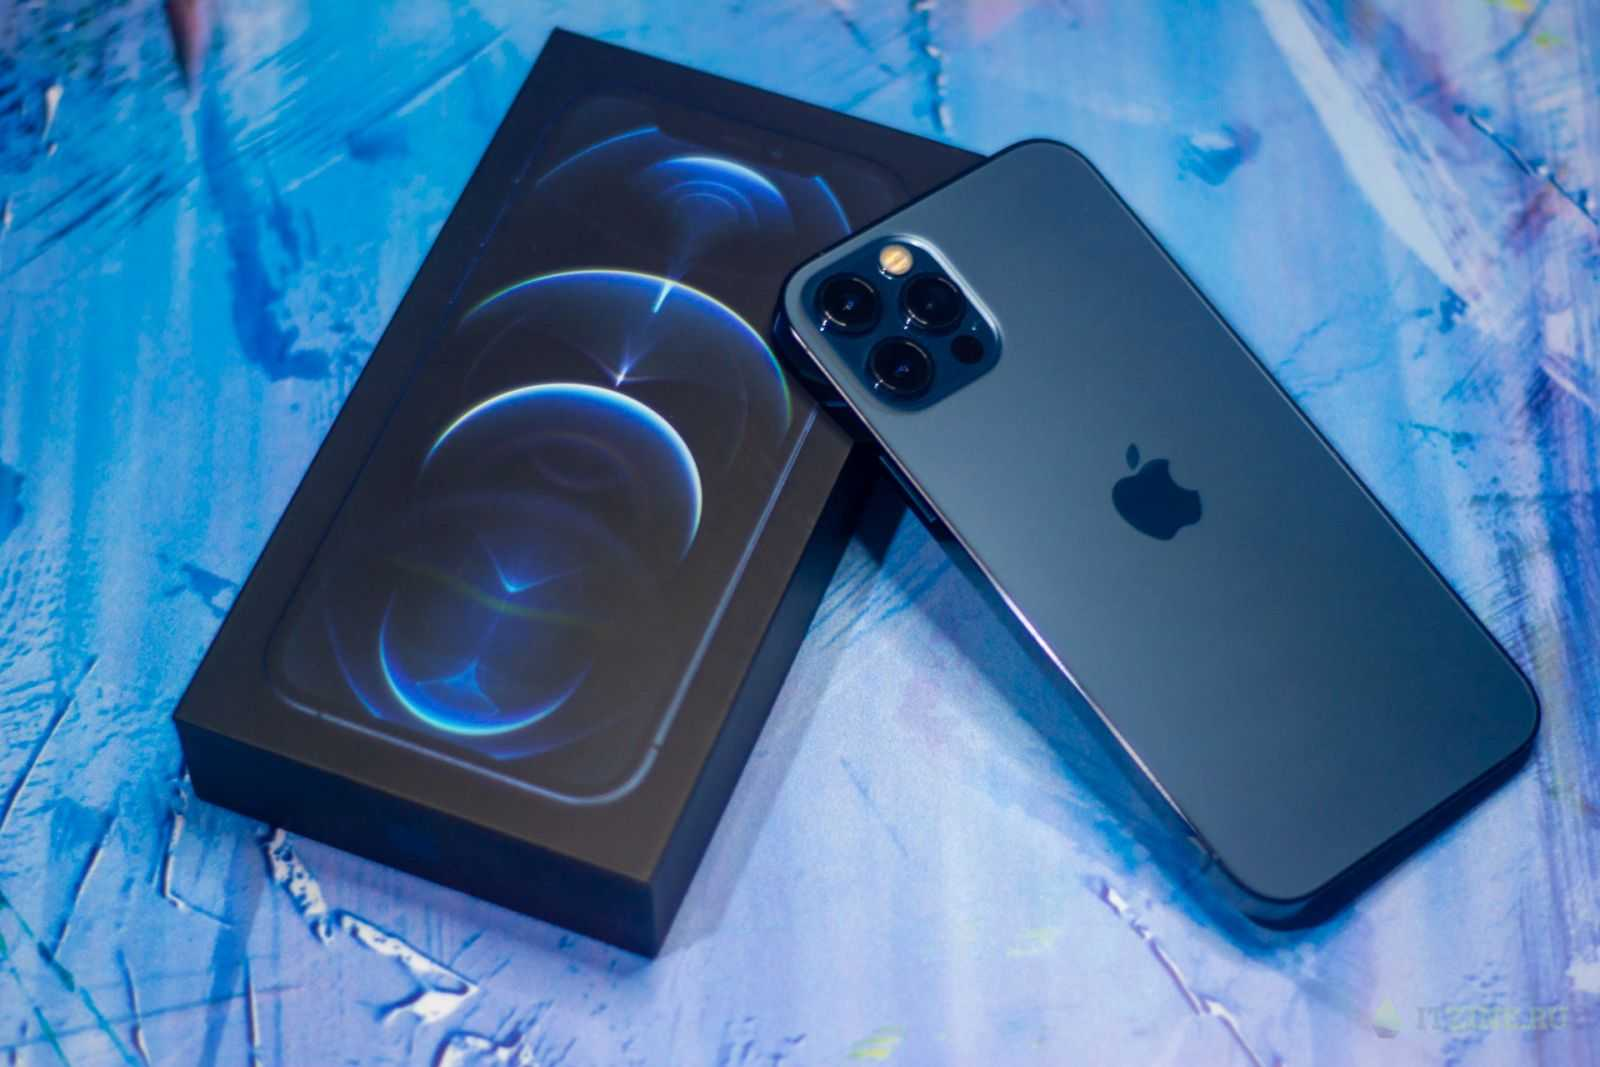 iPhone 13 will receive a 120Hz OLED screen with Freesync technology TechRechard